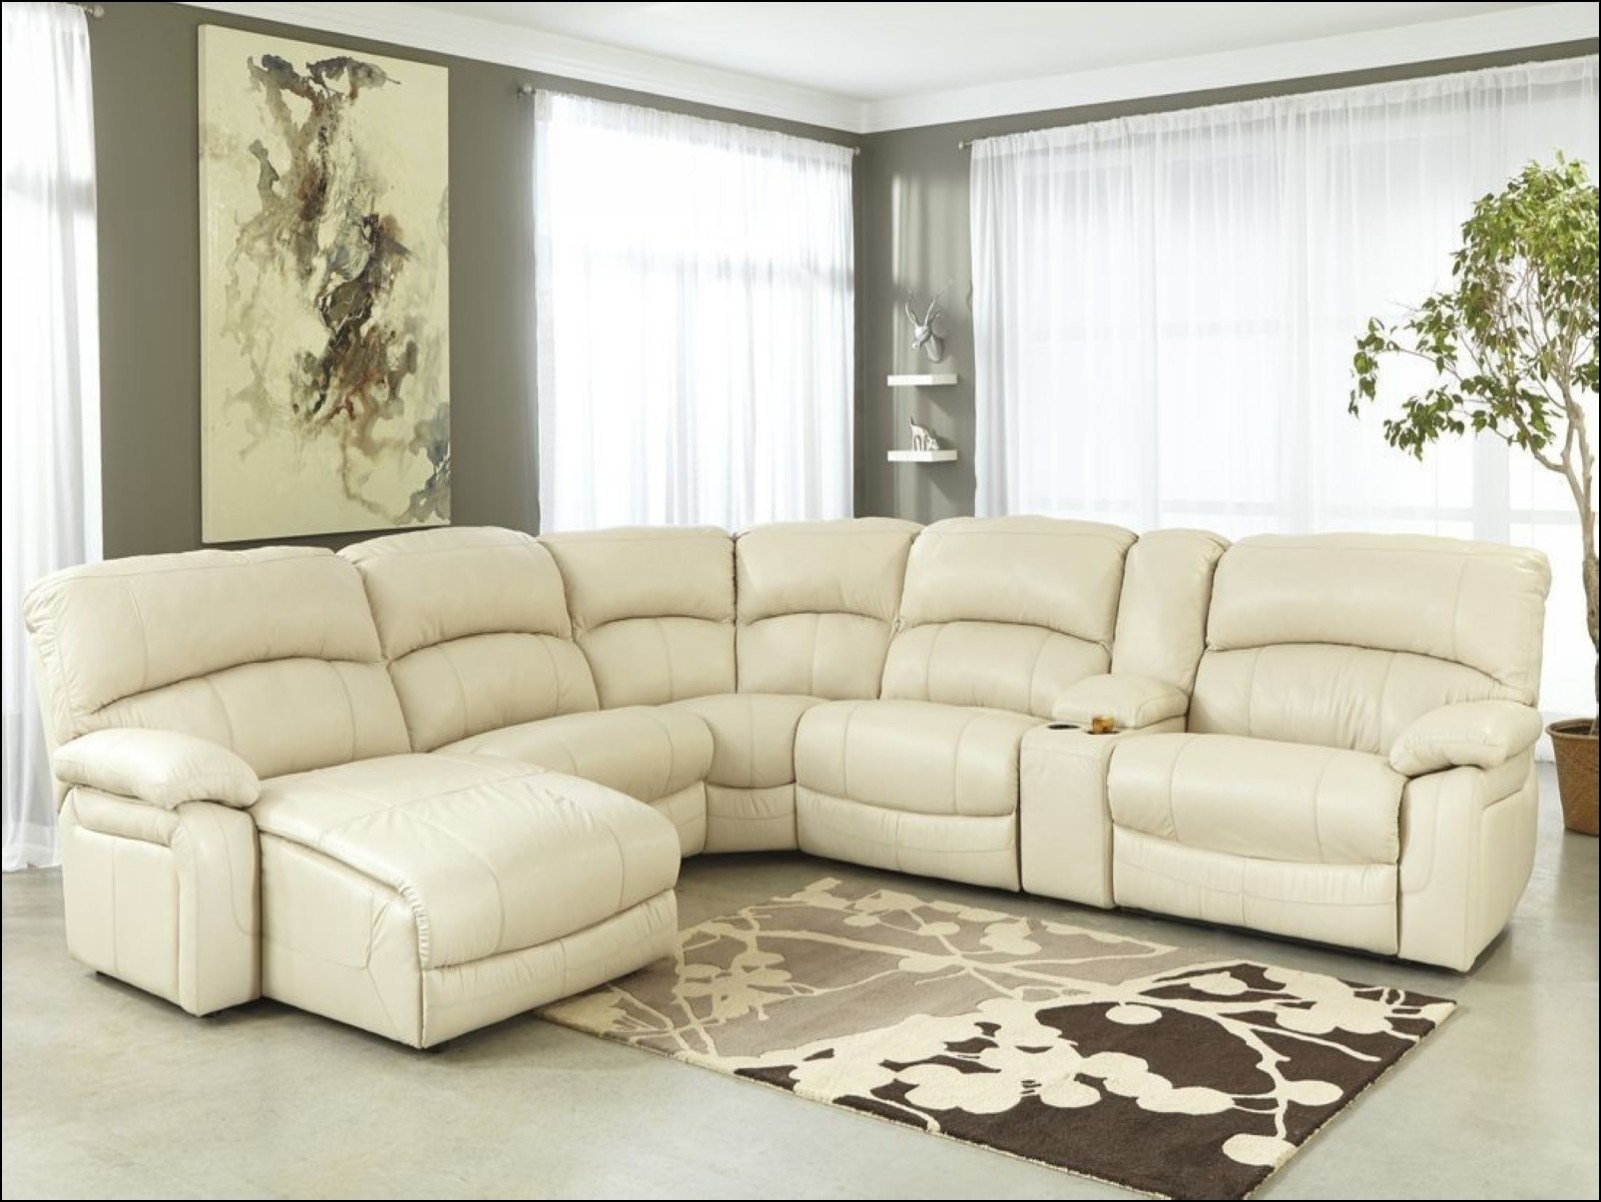 Swish Nashville Furniture Stores Furniture Warehouse Nashville Tn Bf regarding Murfreesboro Tn Sectional Sofas (Image 10 of 10)